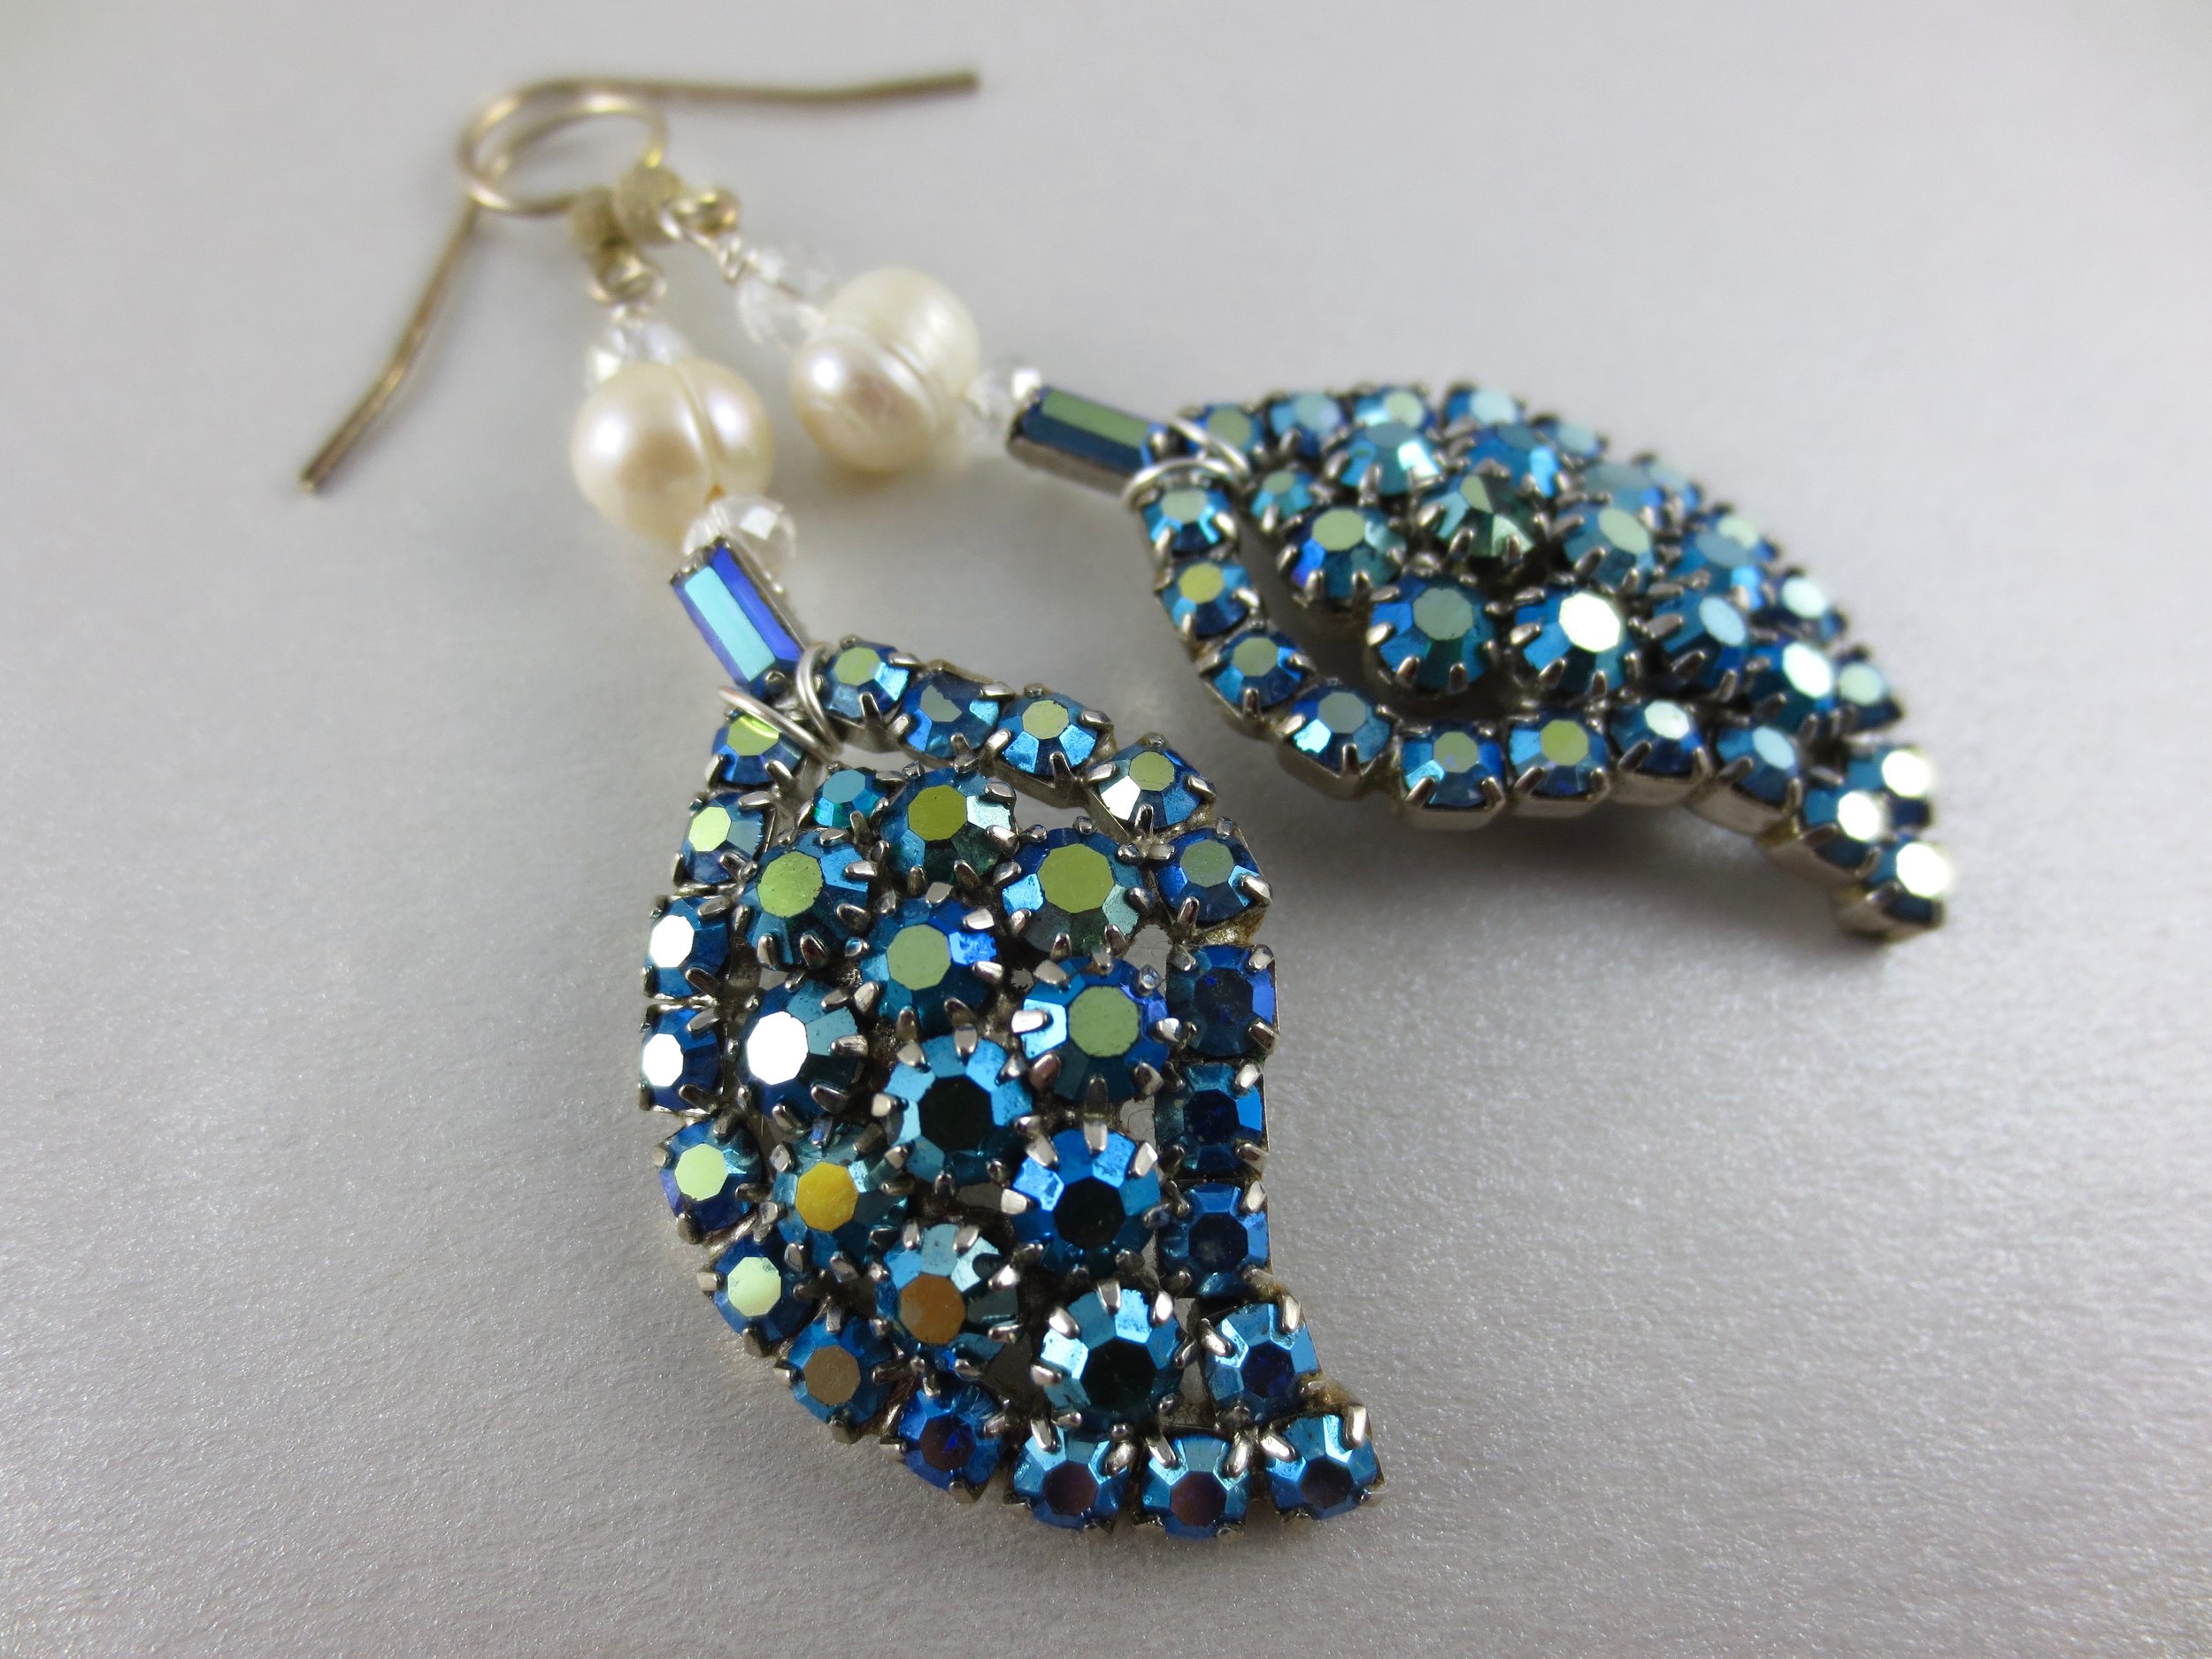 1950s Rhinestone Earrings- Now shined up and updated